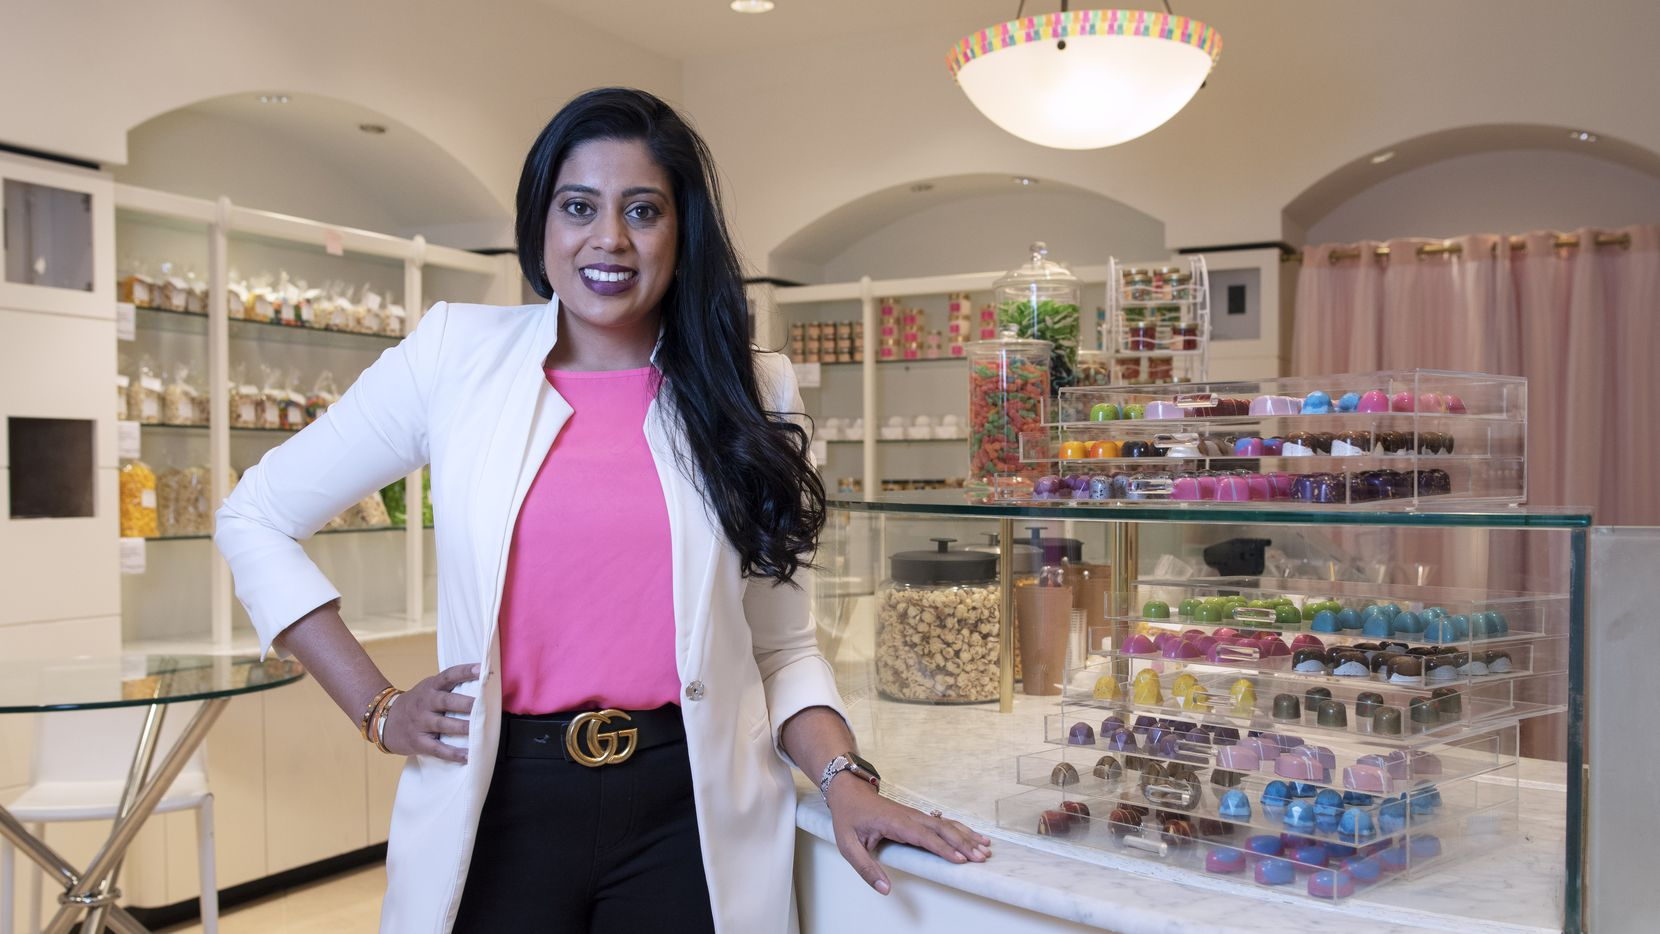 Yasmeen Tadia, who created Make Your Life Sweeter in 2013, opens her first store Nov. 6, 2020 in Dallas.